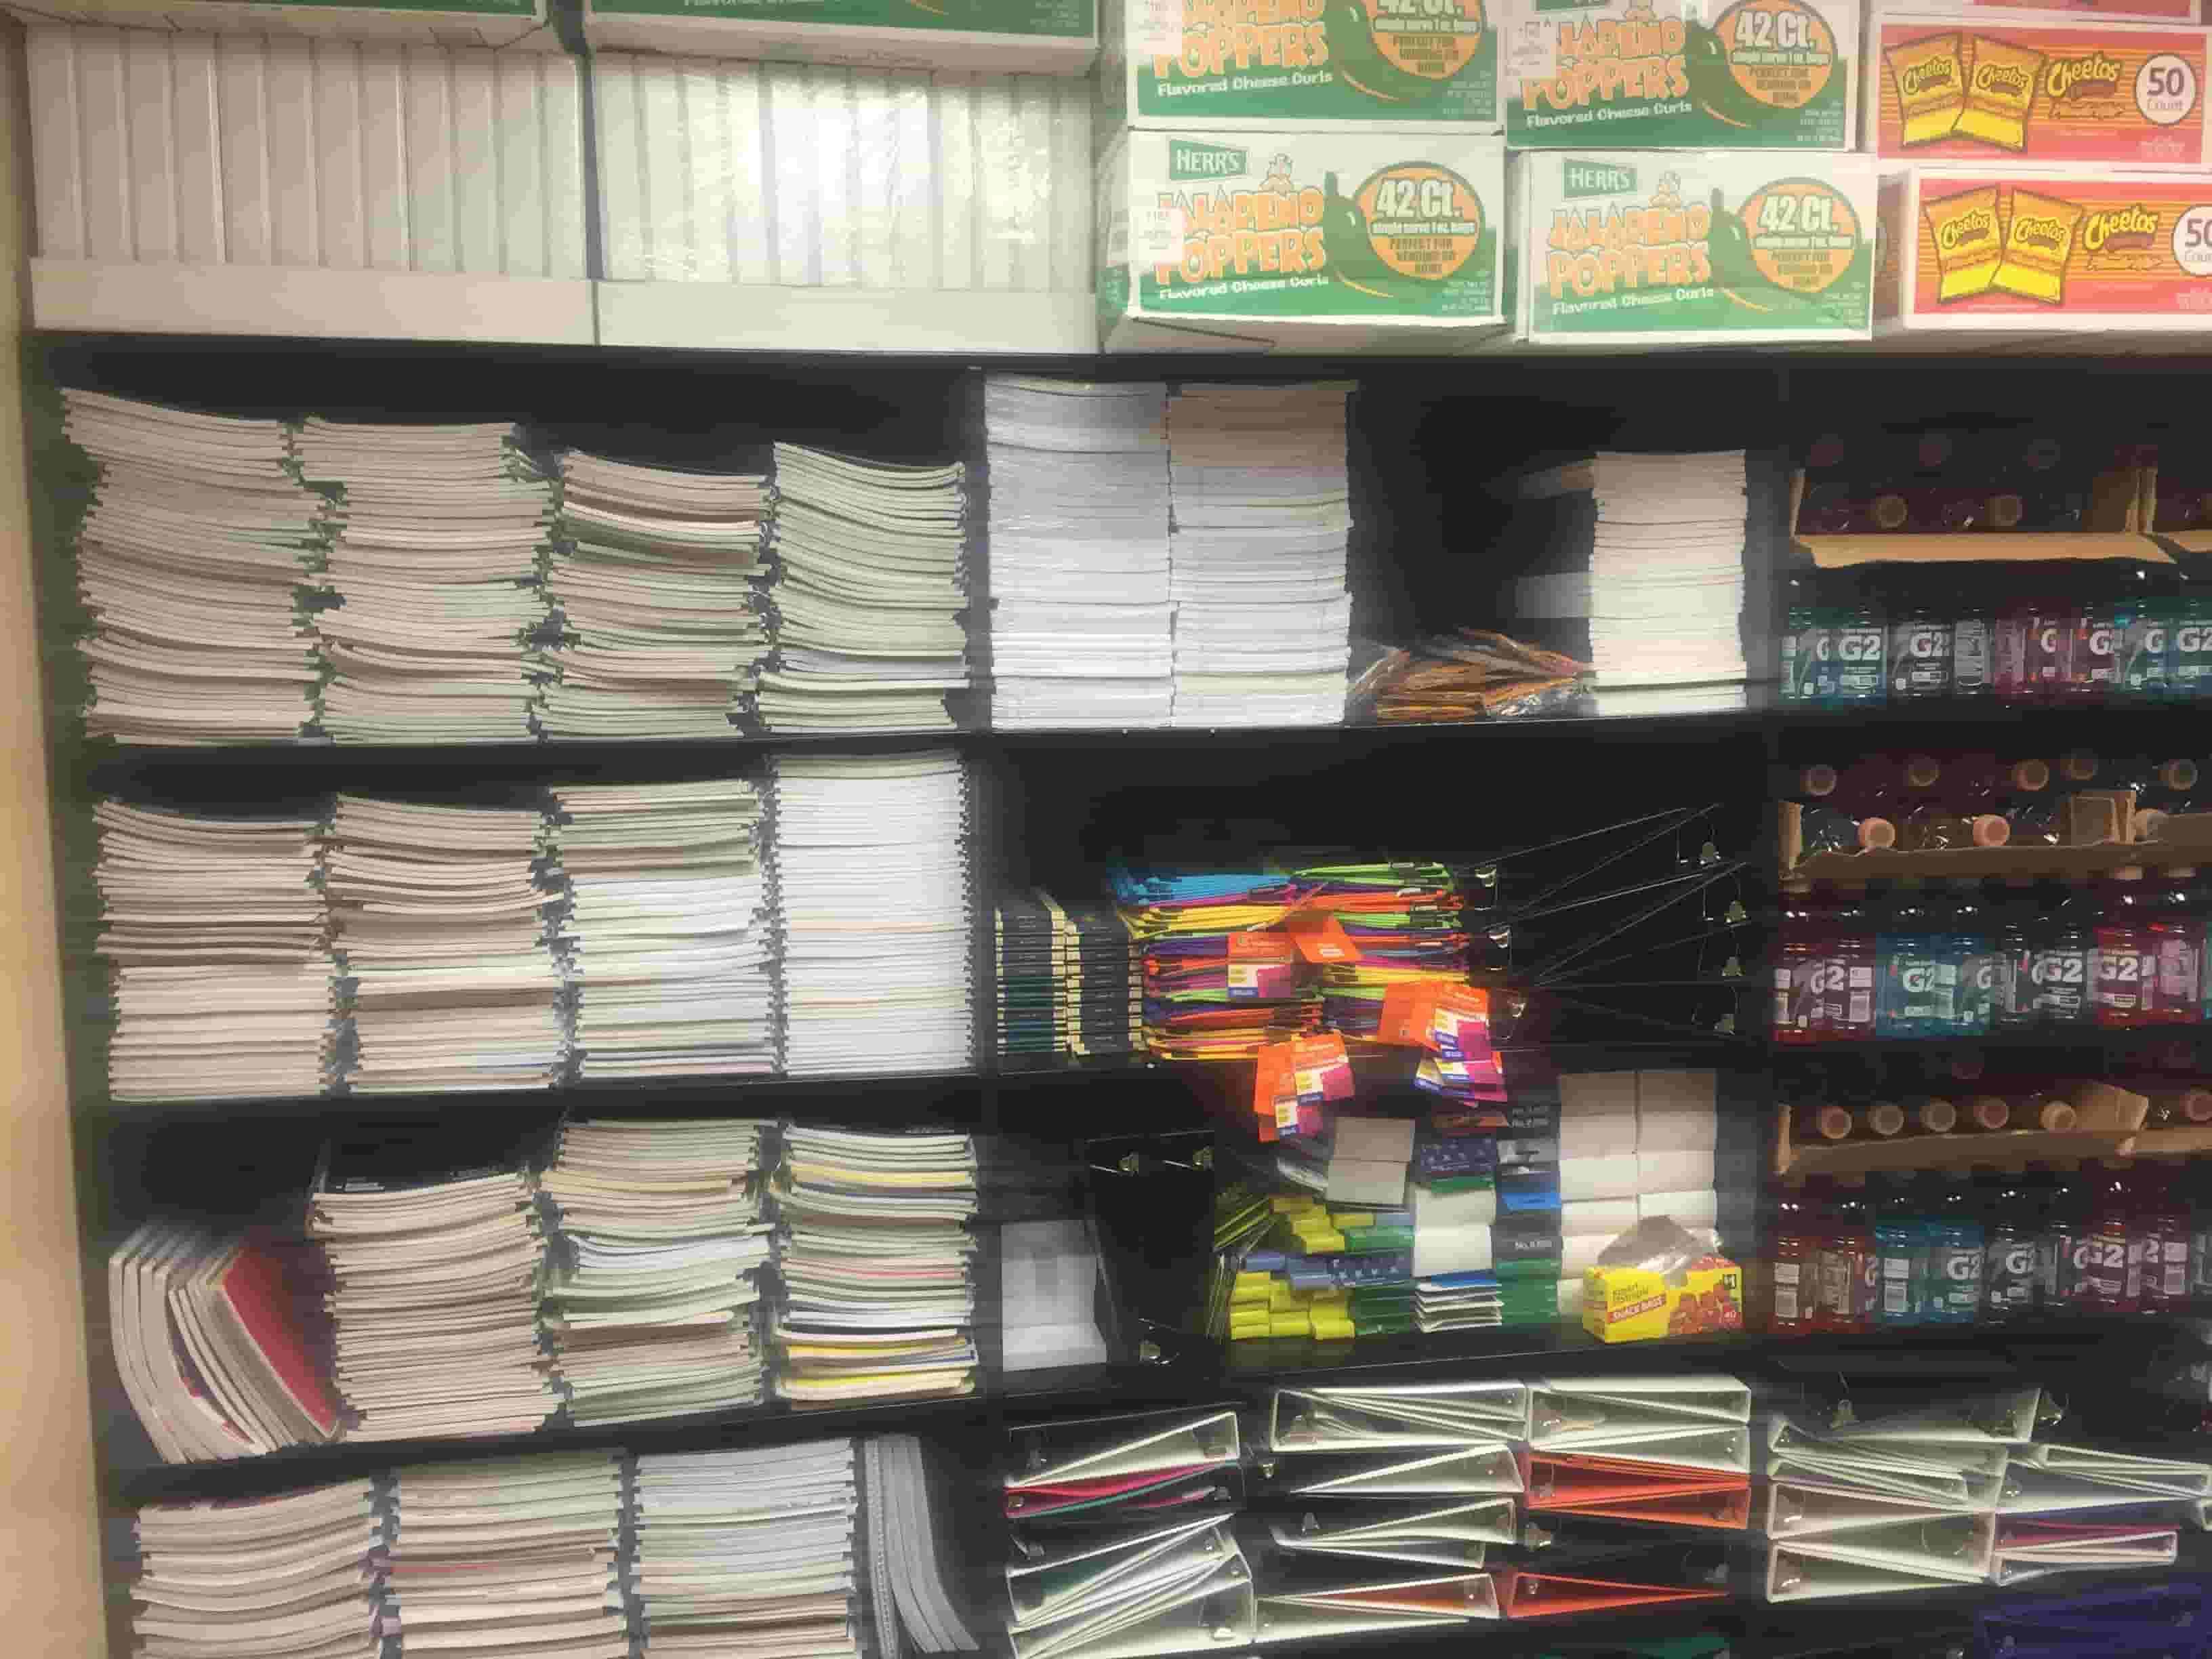 A well stocked and organized PBIS store